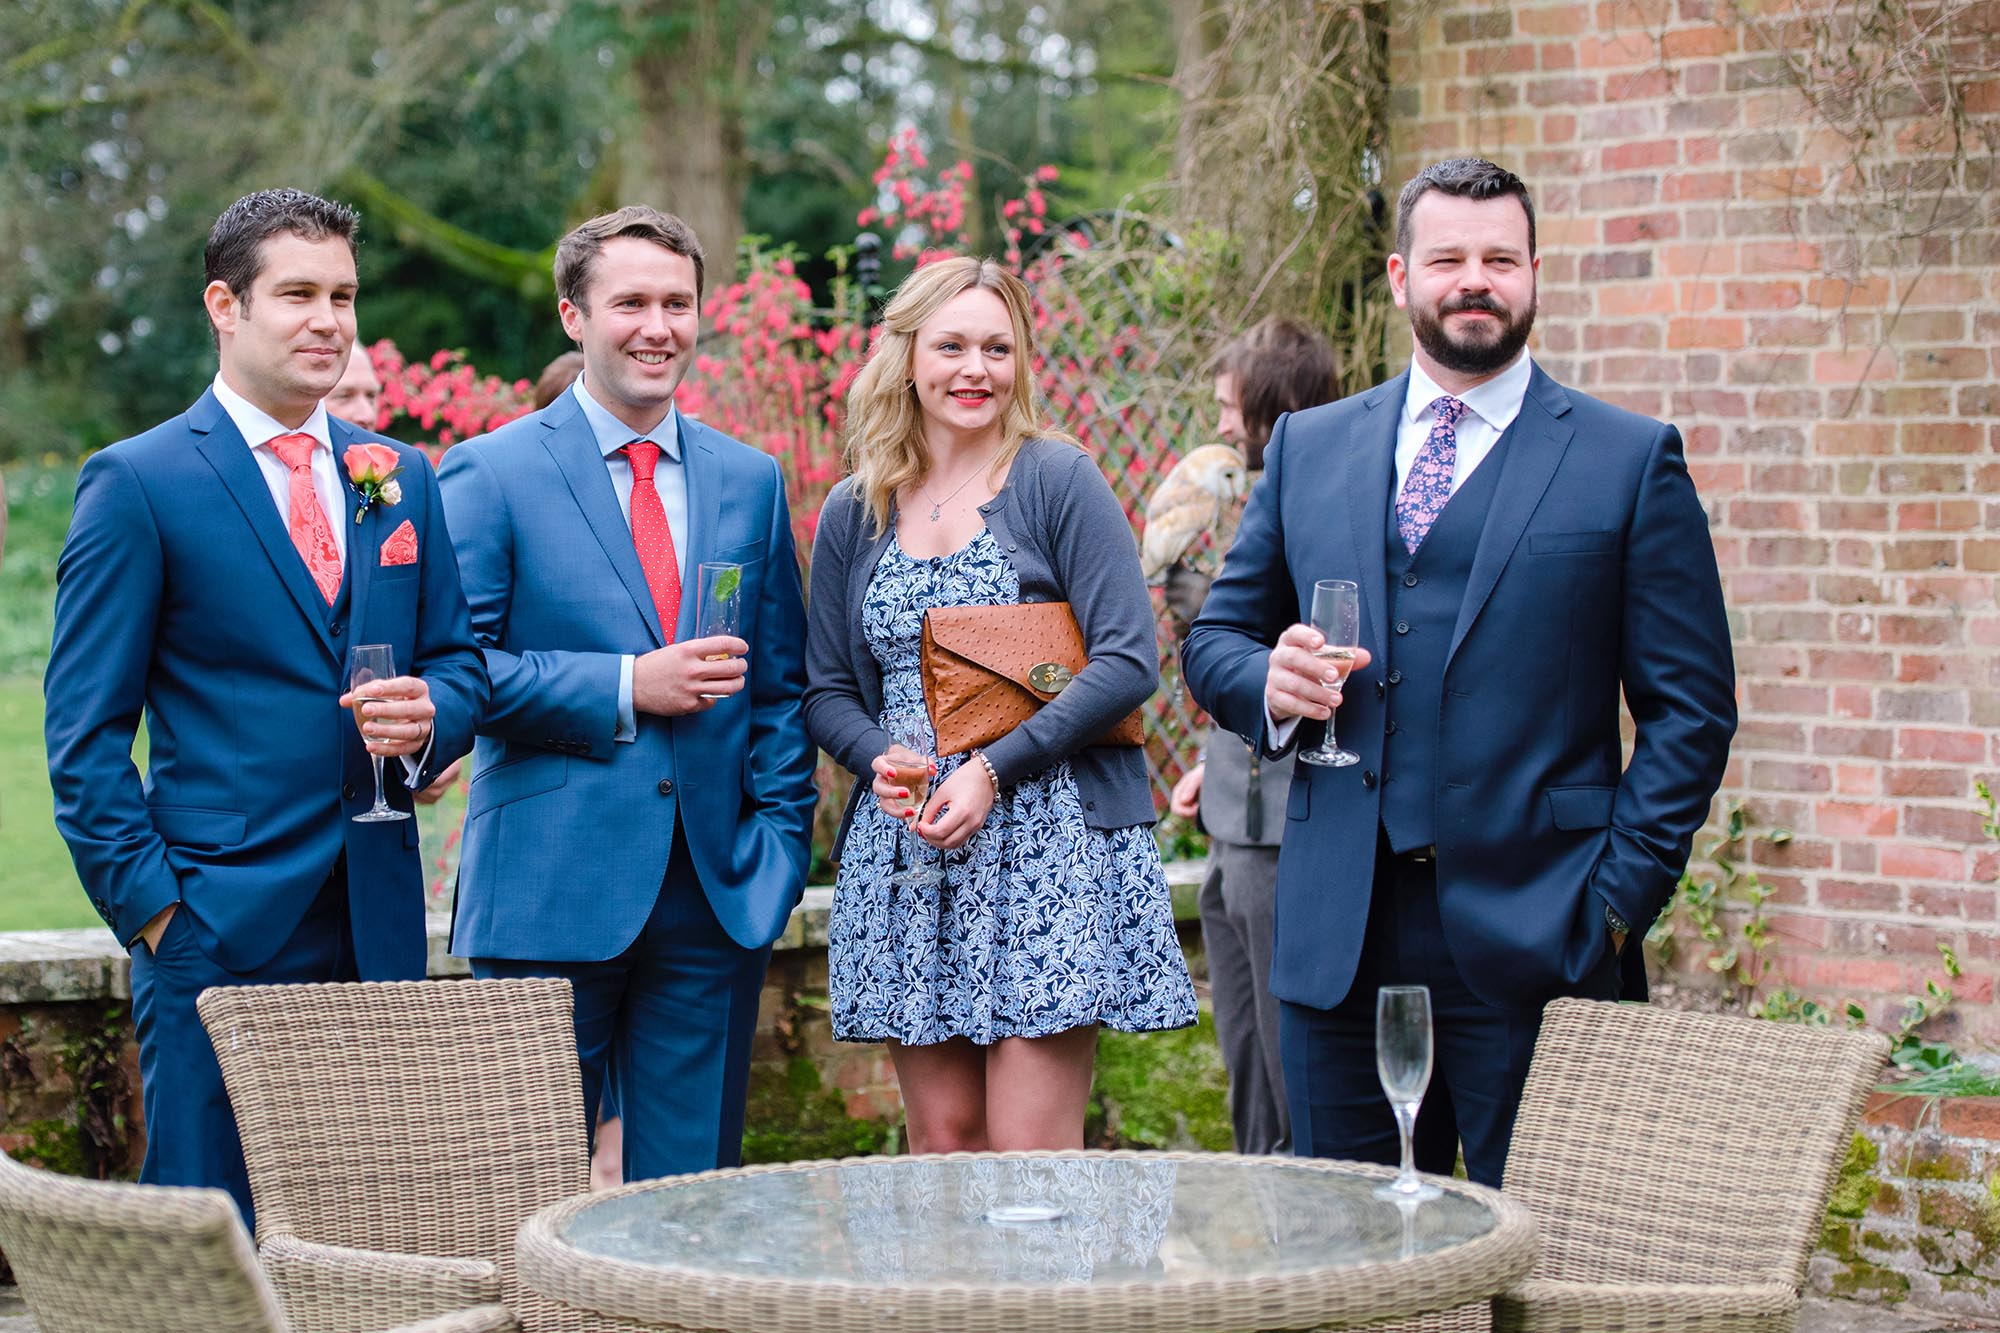 An elegant and fun spring wedding at Lainston House - Sarah Williams Photography